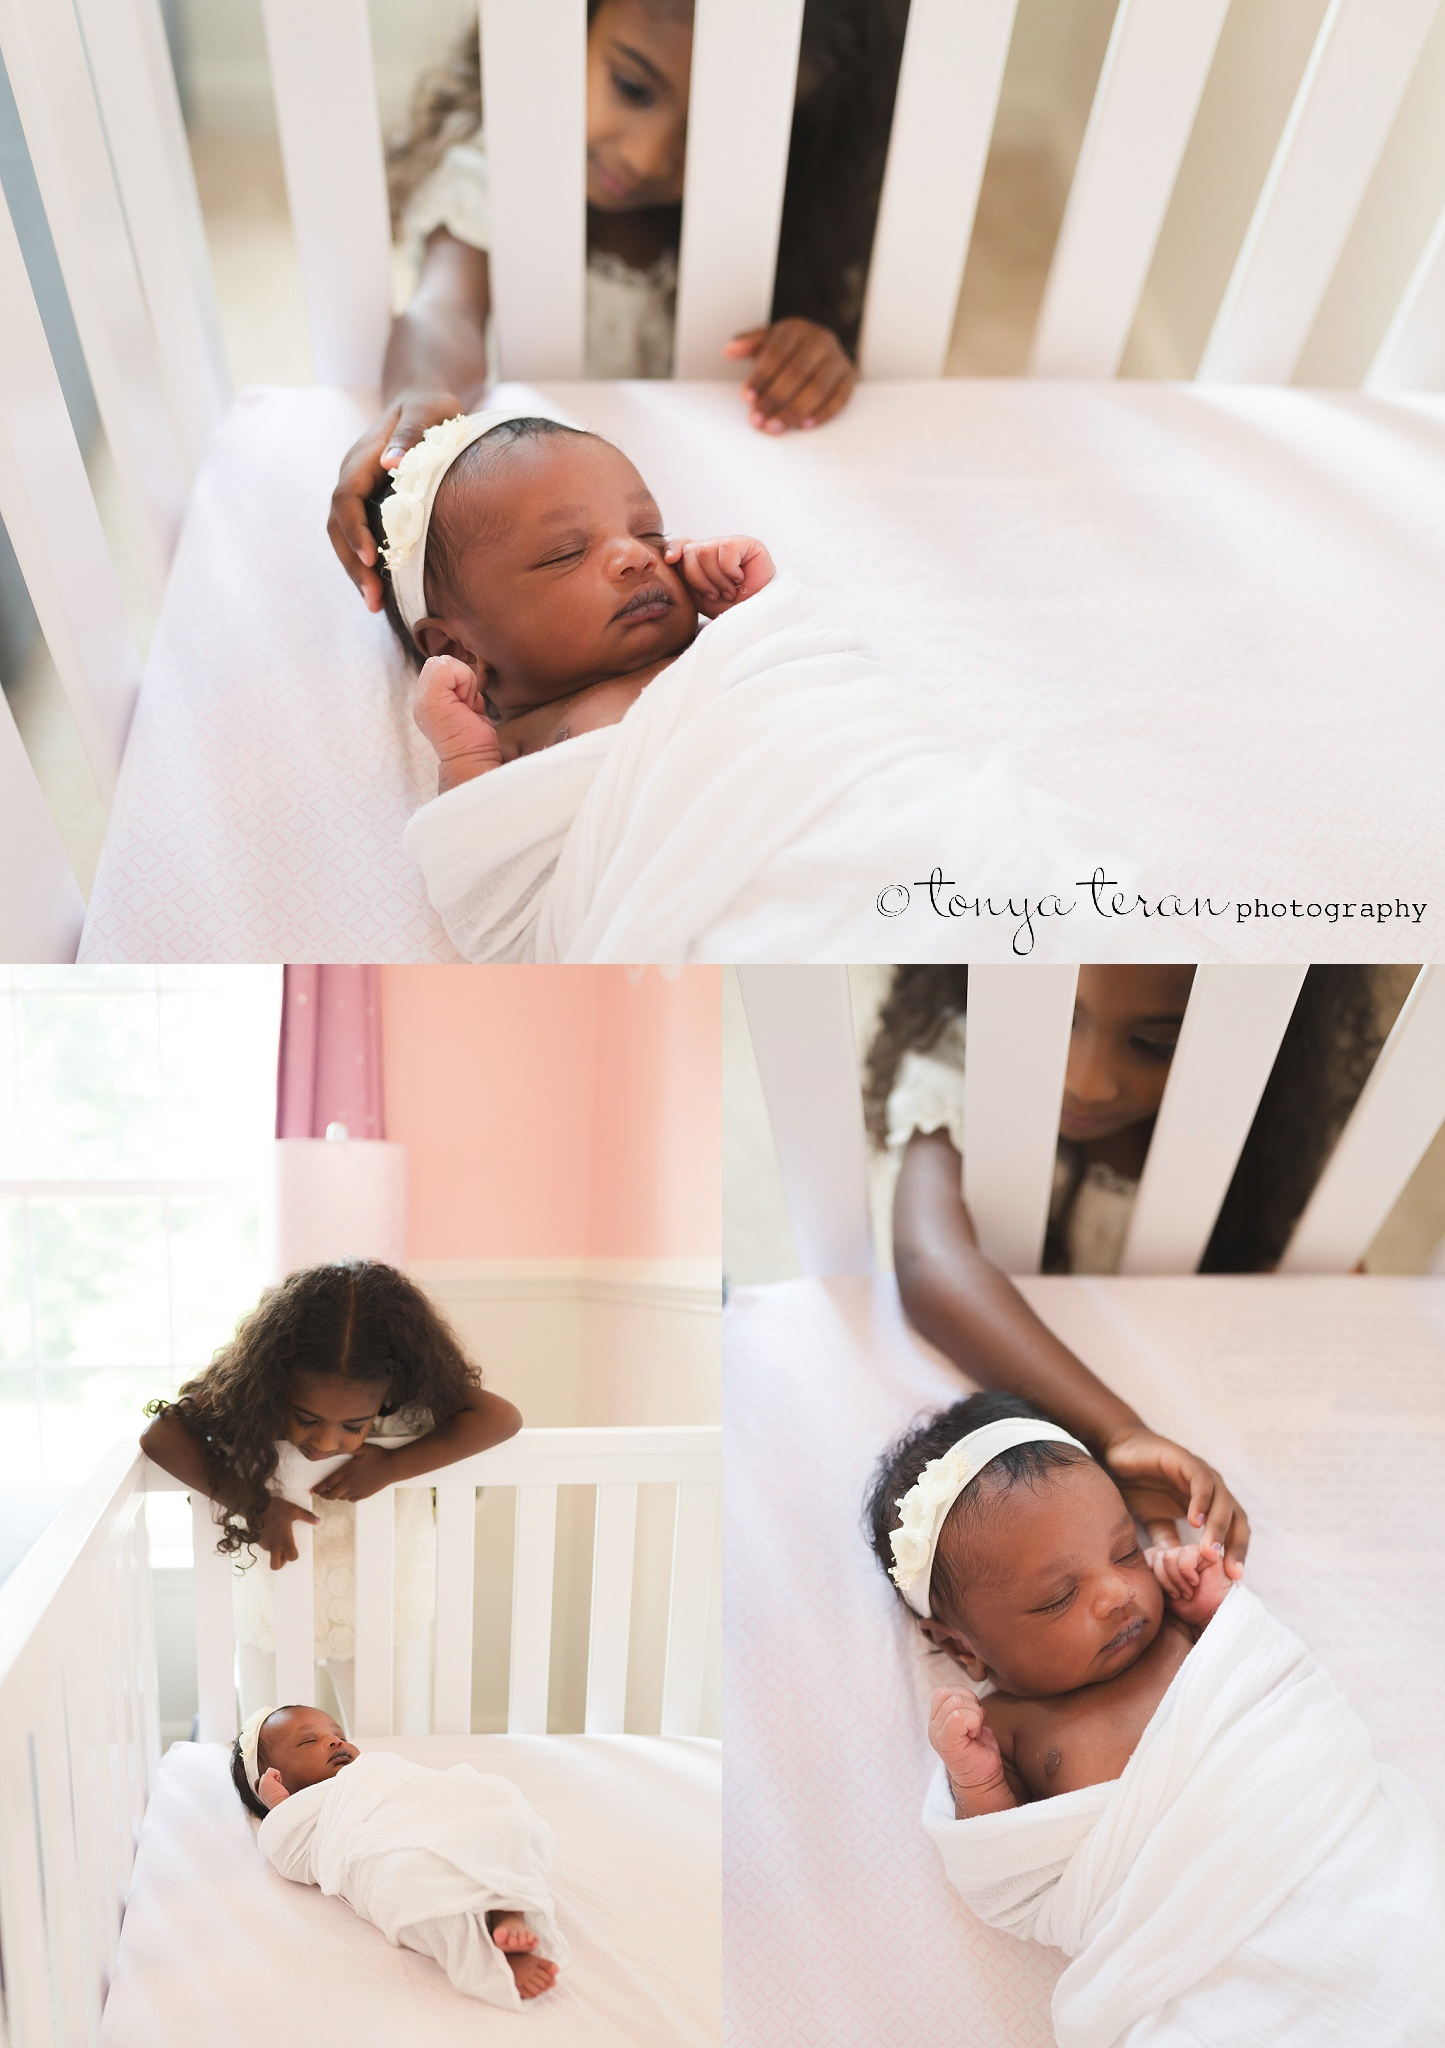 Newborn Photo Session | Tonya Teran Photography, Germantown, MD Newborn, Baby, and Family Photographer